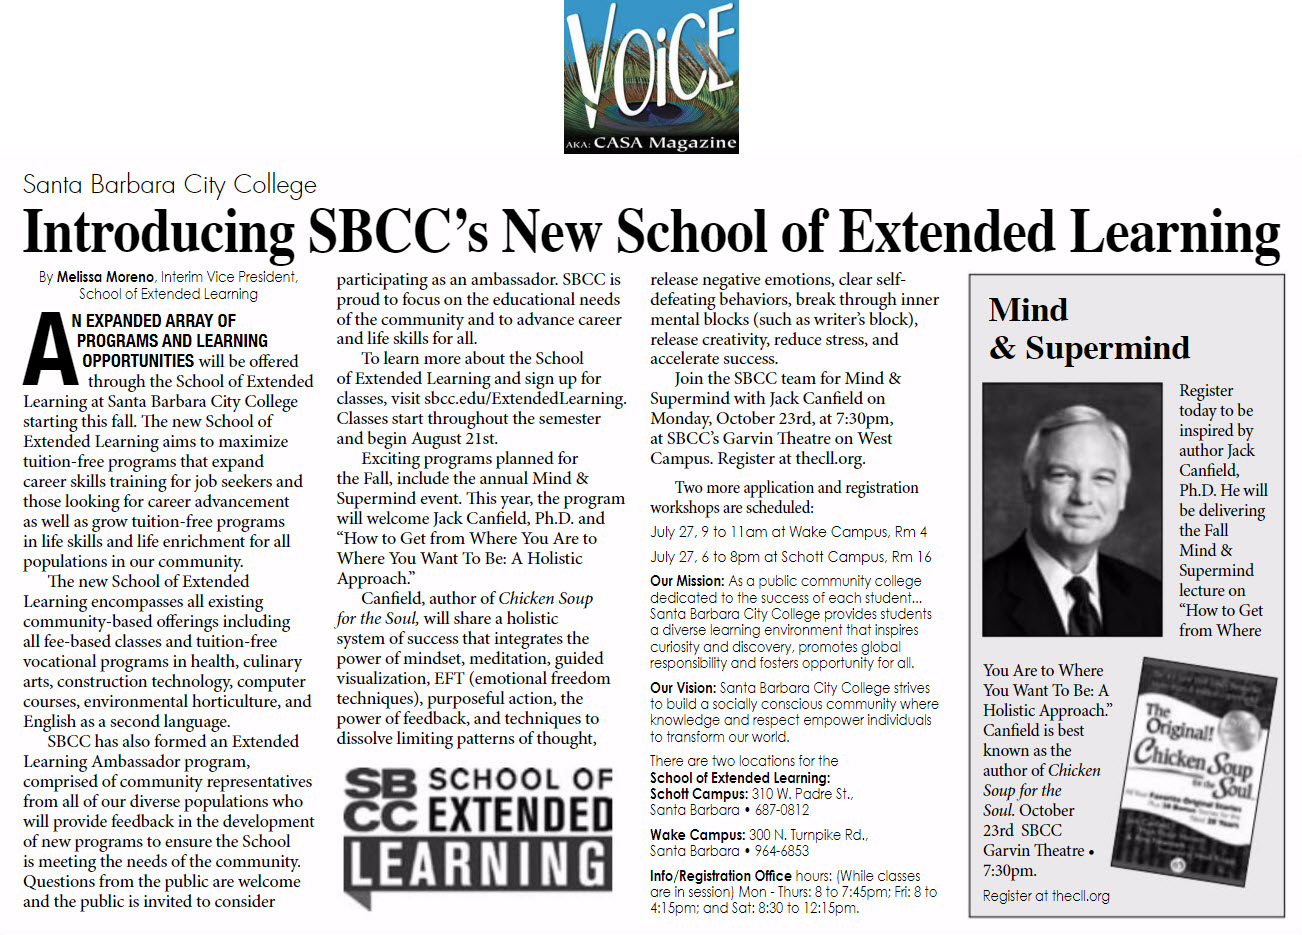 Voice Magazine Extended Learning Article 7/7/17